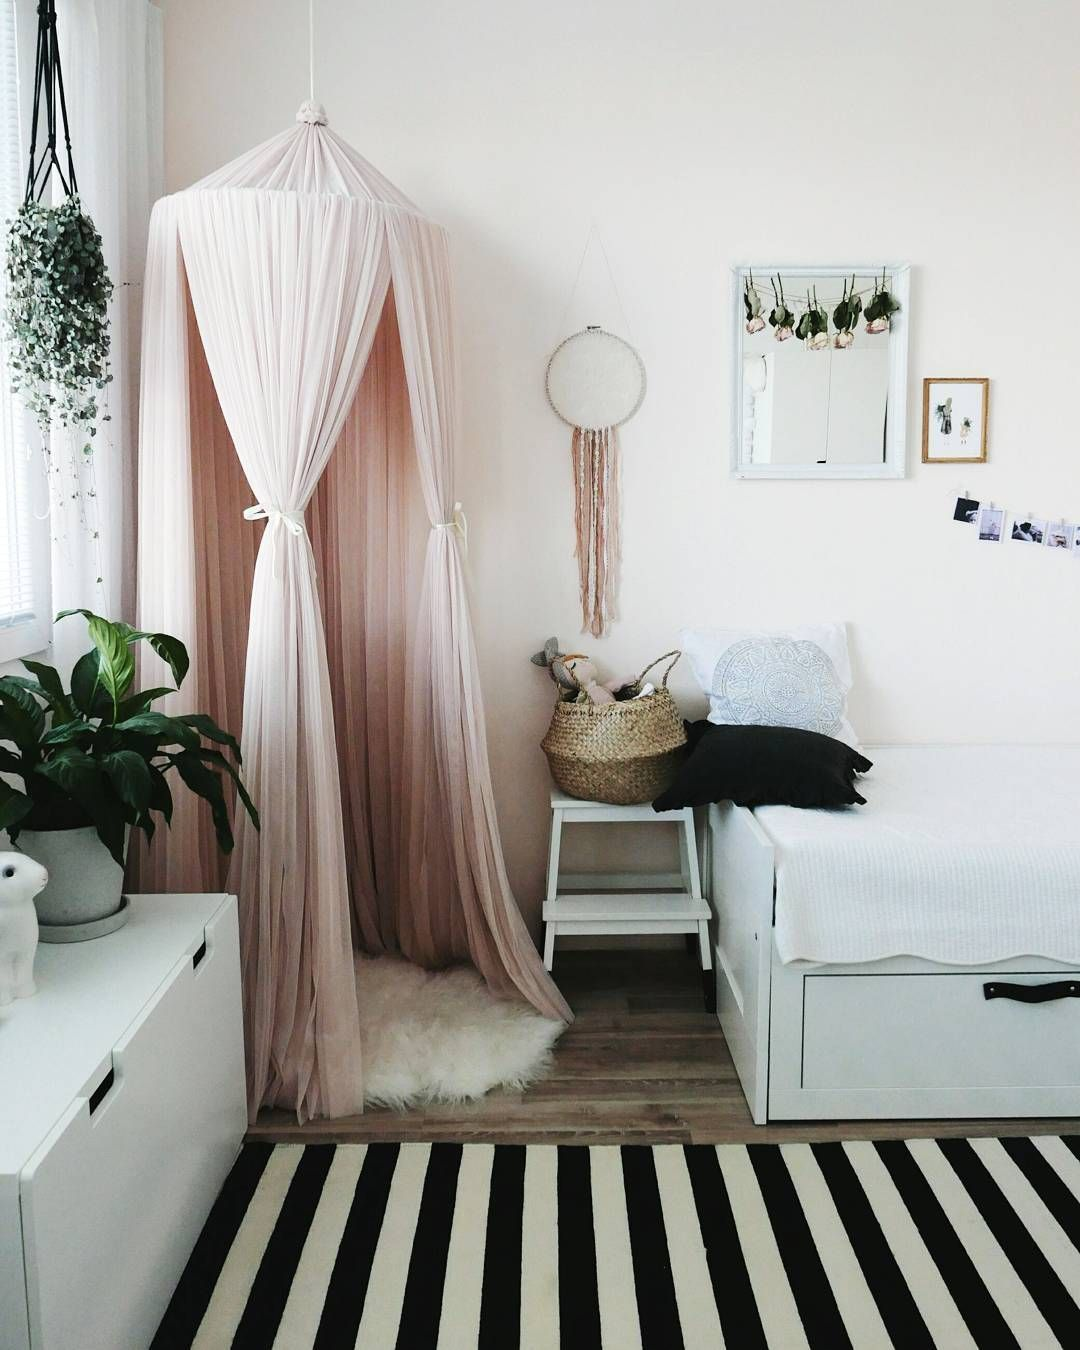 How To Hang Curtains On A Canopy Bed Ehow - Create magical spaces with this blush pink dreamy nursery canopy it s perfect over beds cribs and as a reading or play corner